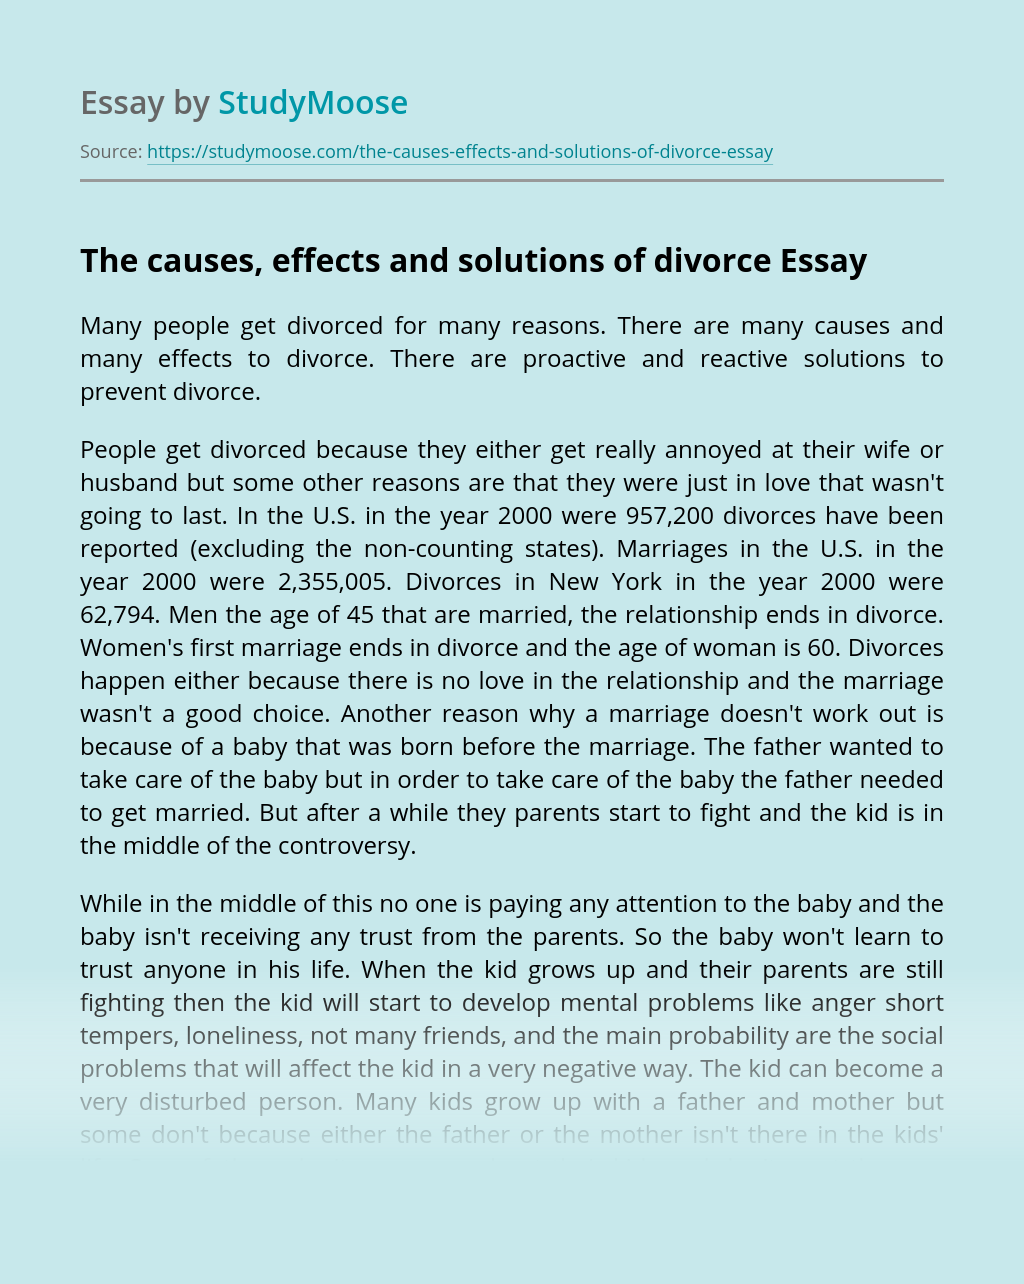 The causes, effects and solutions of divorce